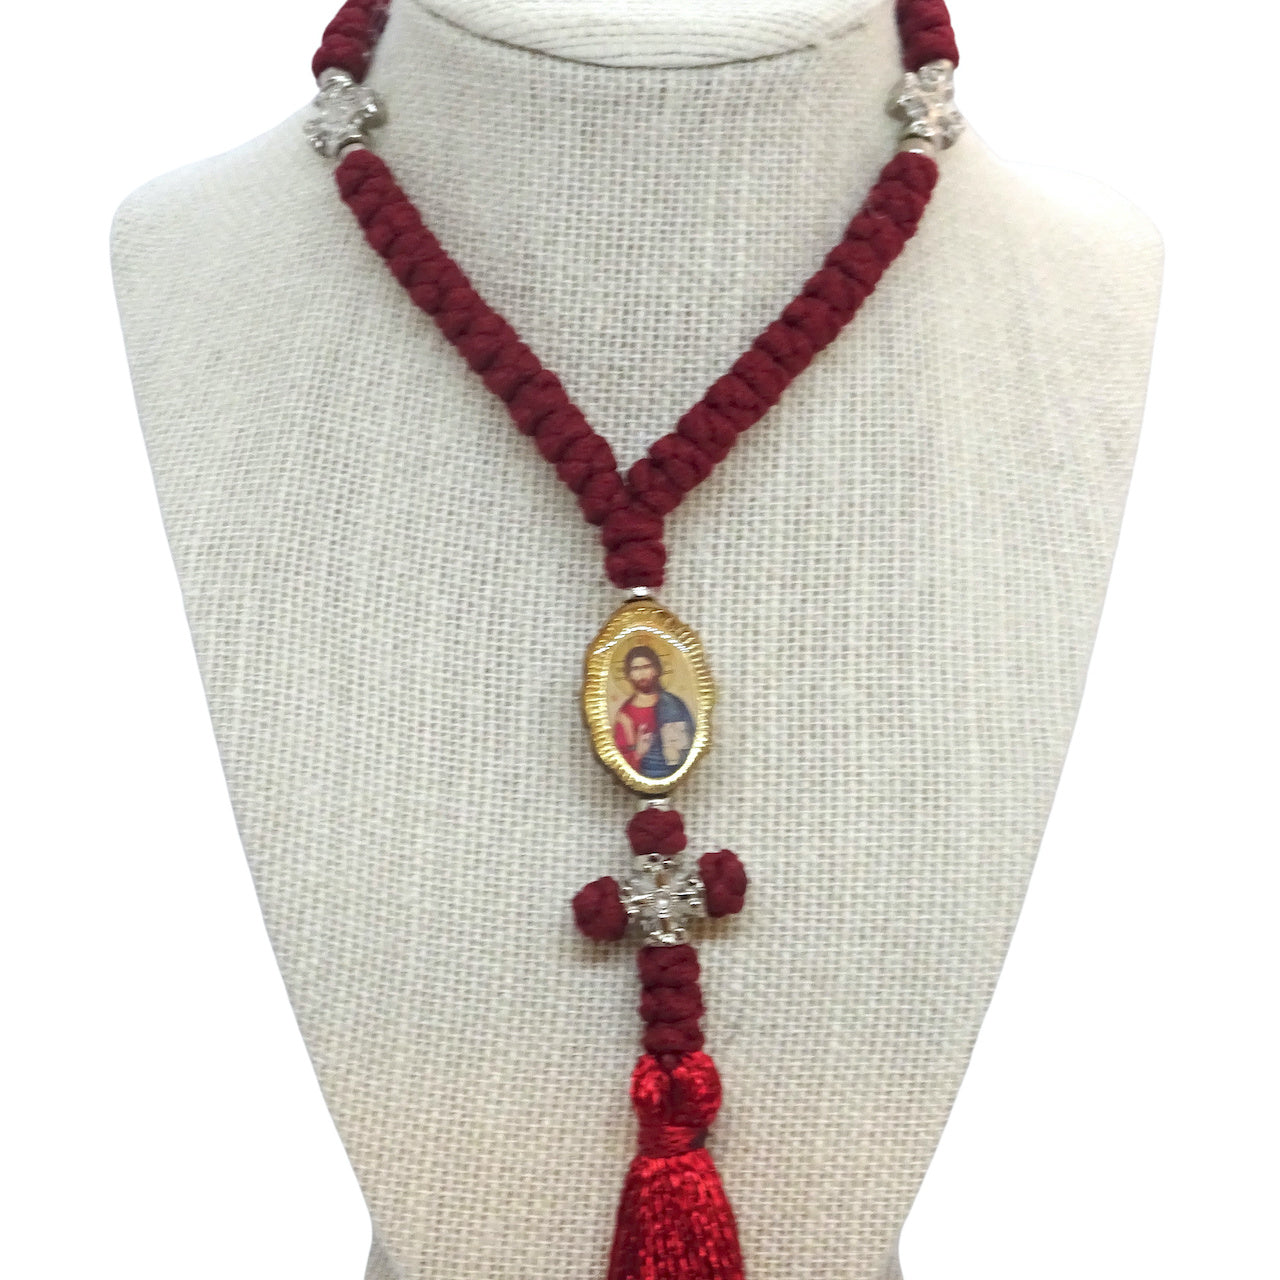 Orthodox Christian Prayer Rope with 50 Knots and Silver-Tone Cross